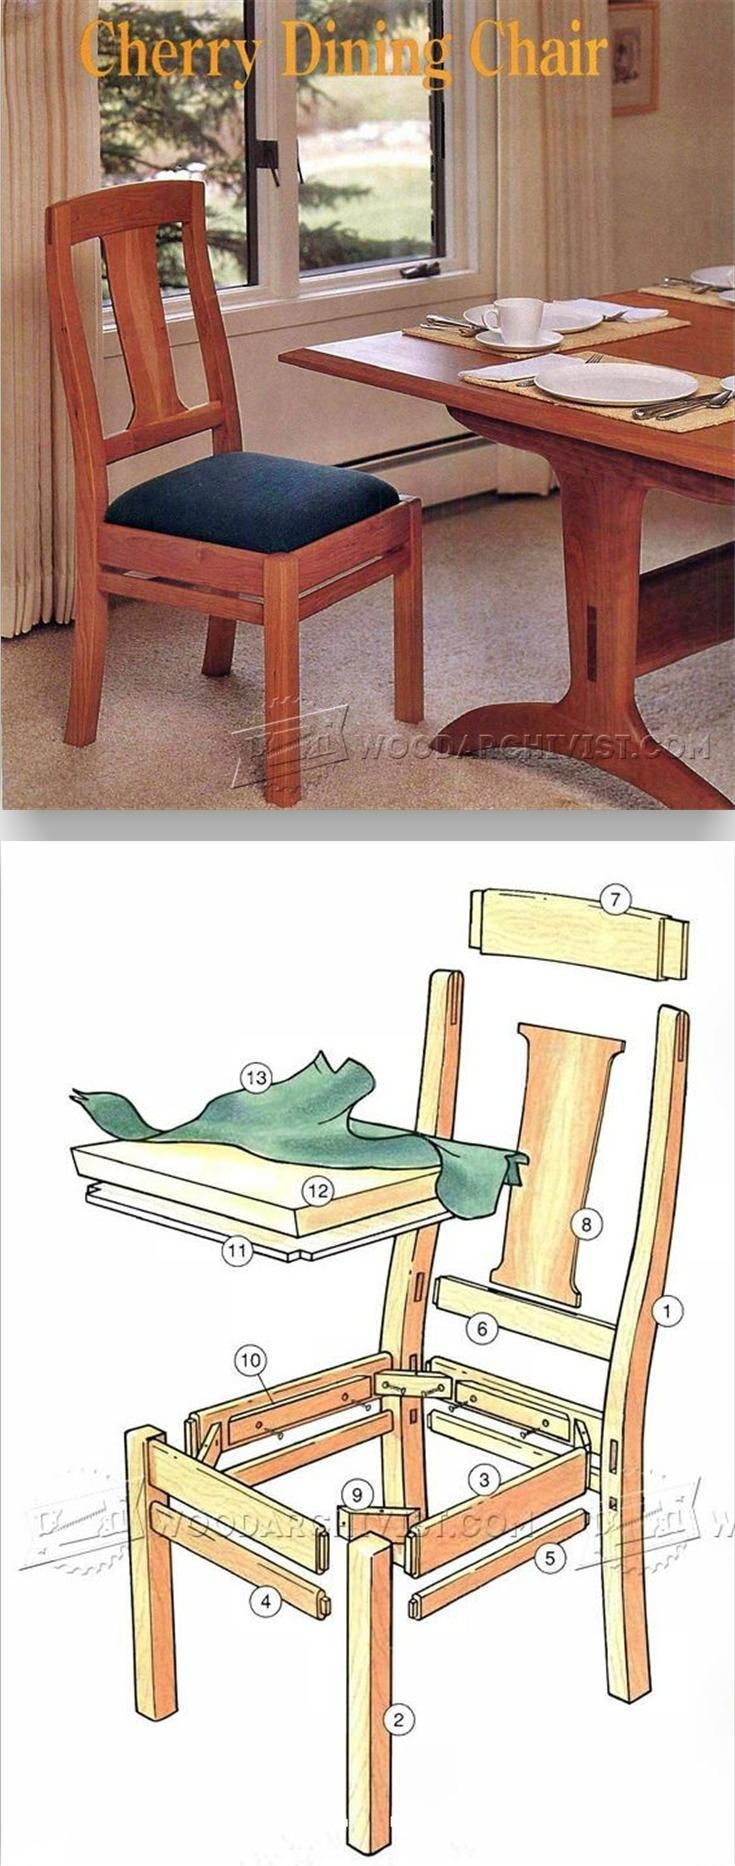 Cherry Dining Chair Plans - Furniture Plans and Projects | WoodArchivist.com